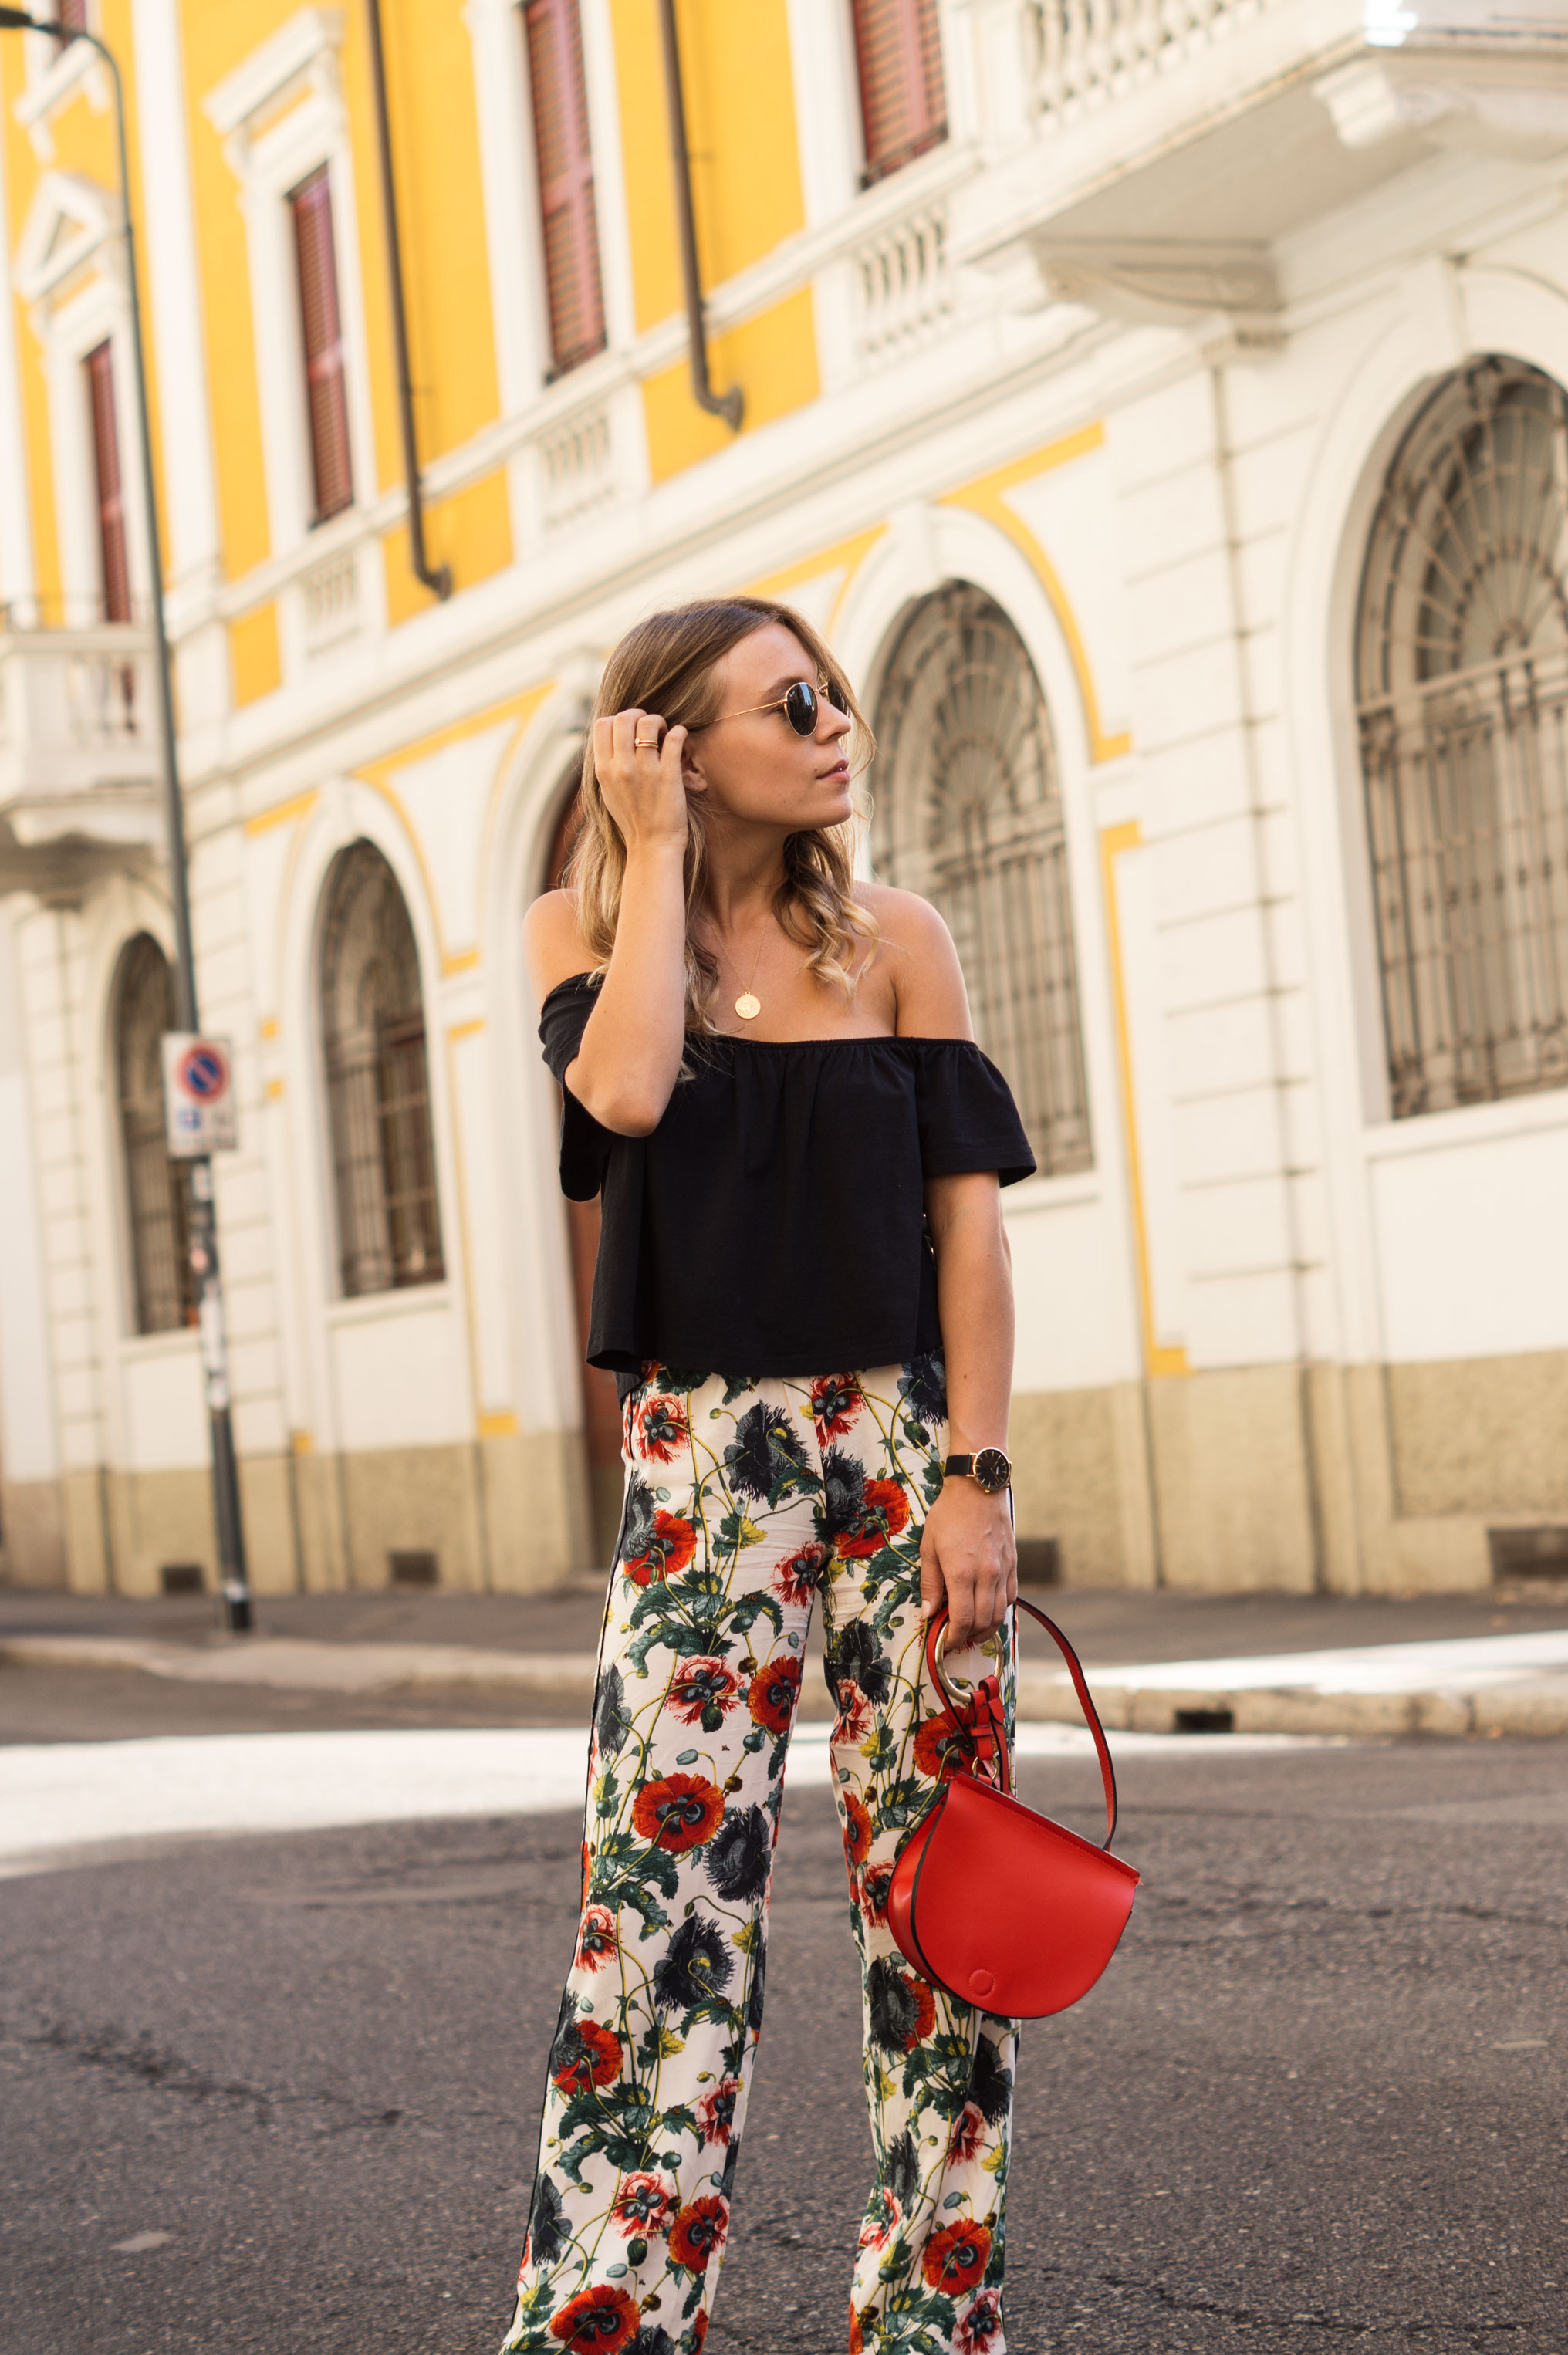 H&M Printhose Milan Sariety Fashionblogger Sommerlook Mailand rote Tasche Chanel Schuhe Dupes Summer Floral Print-2